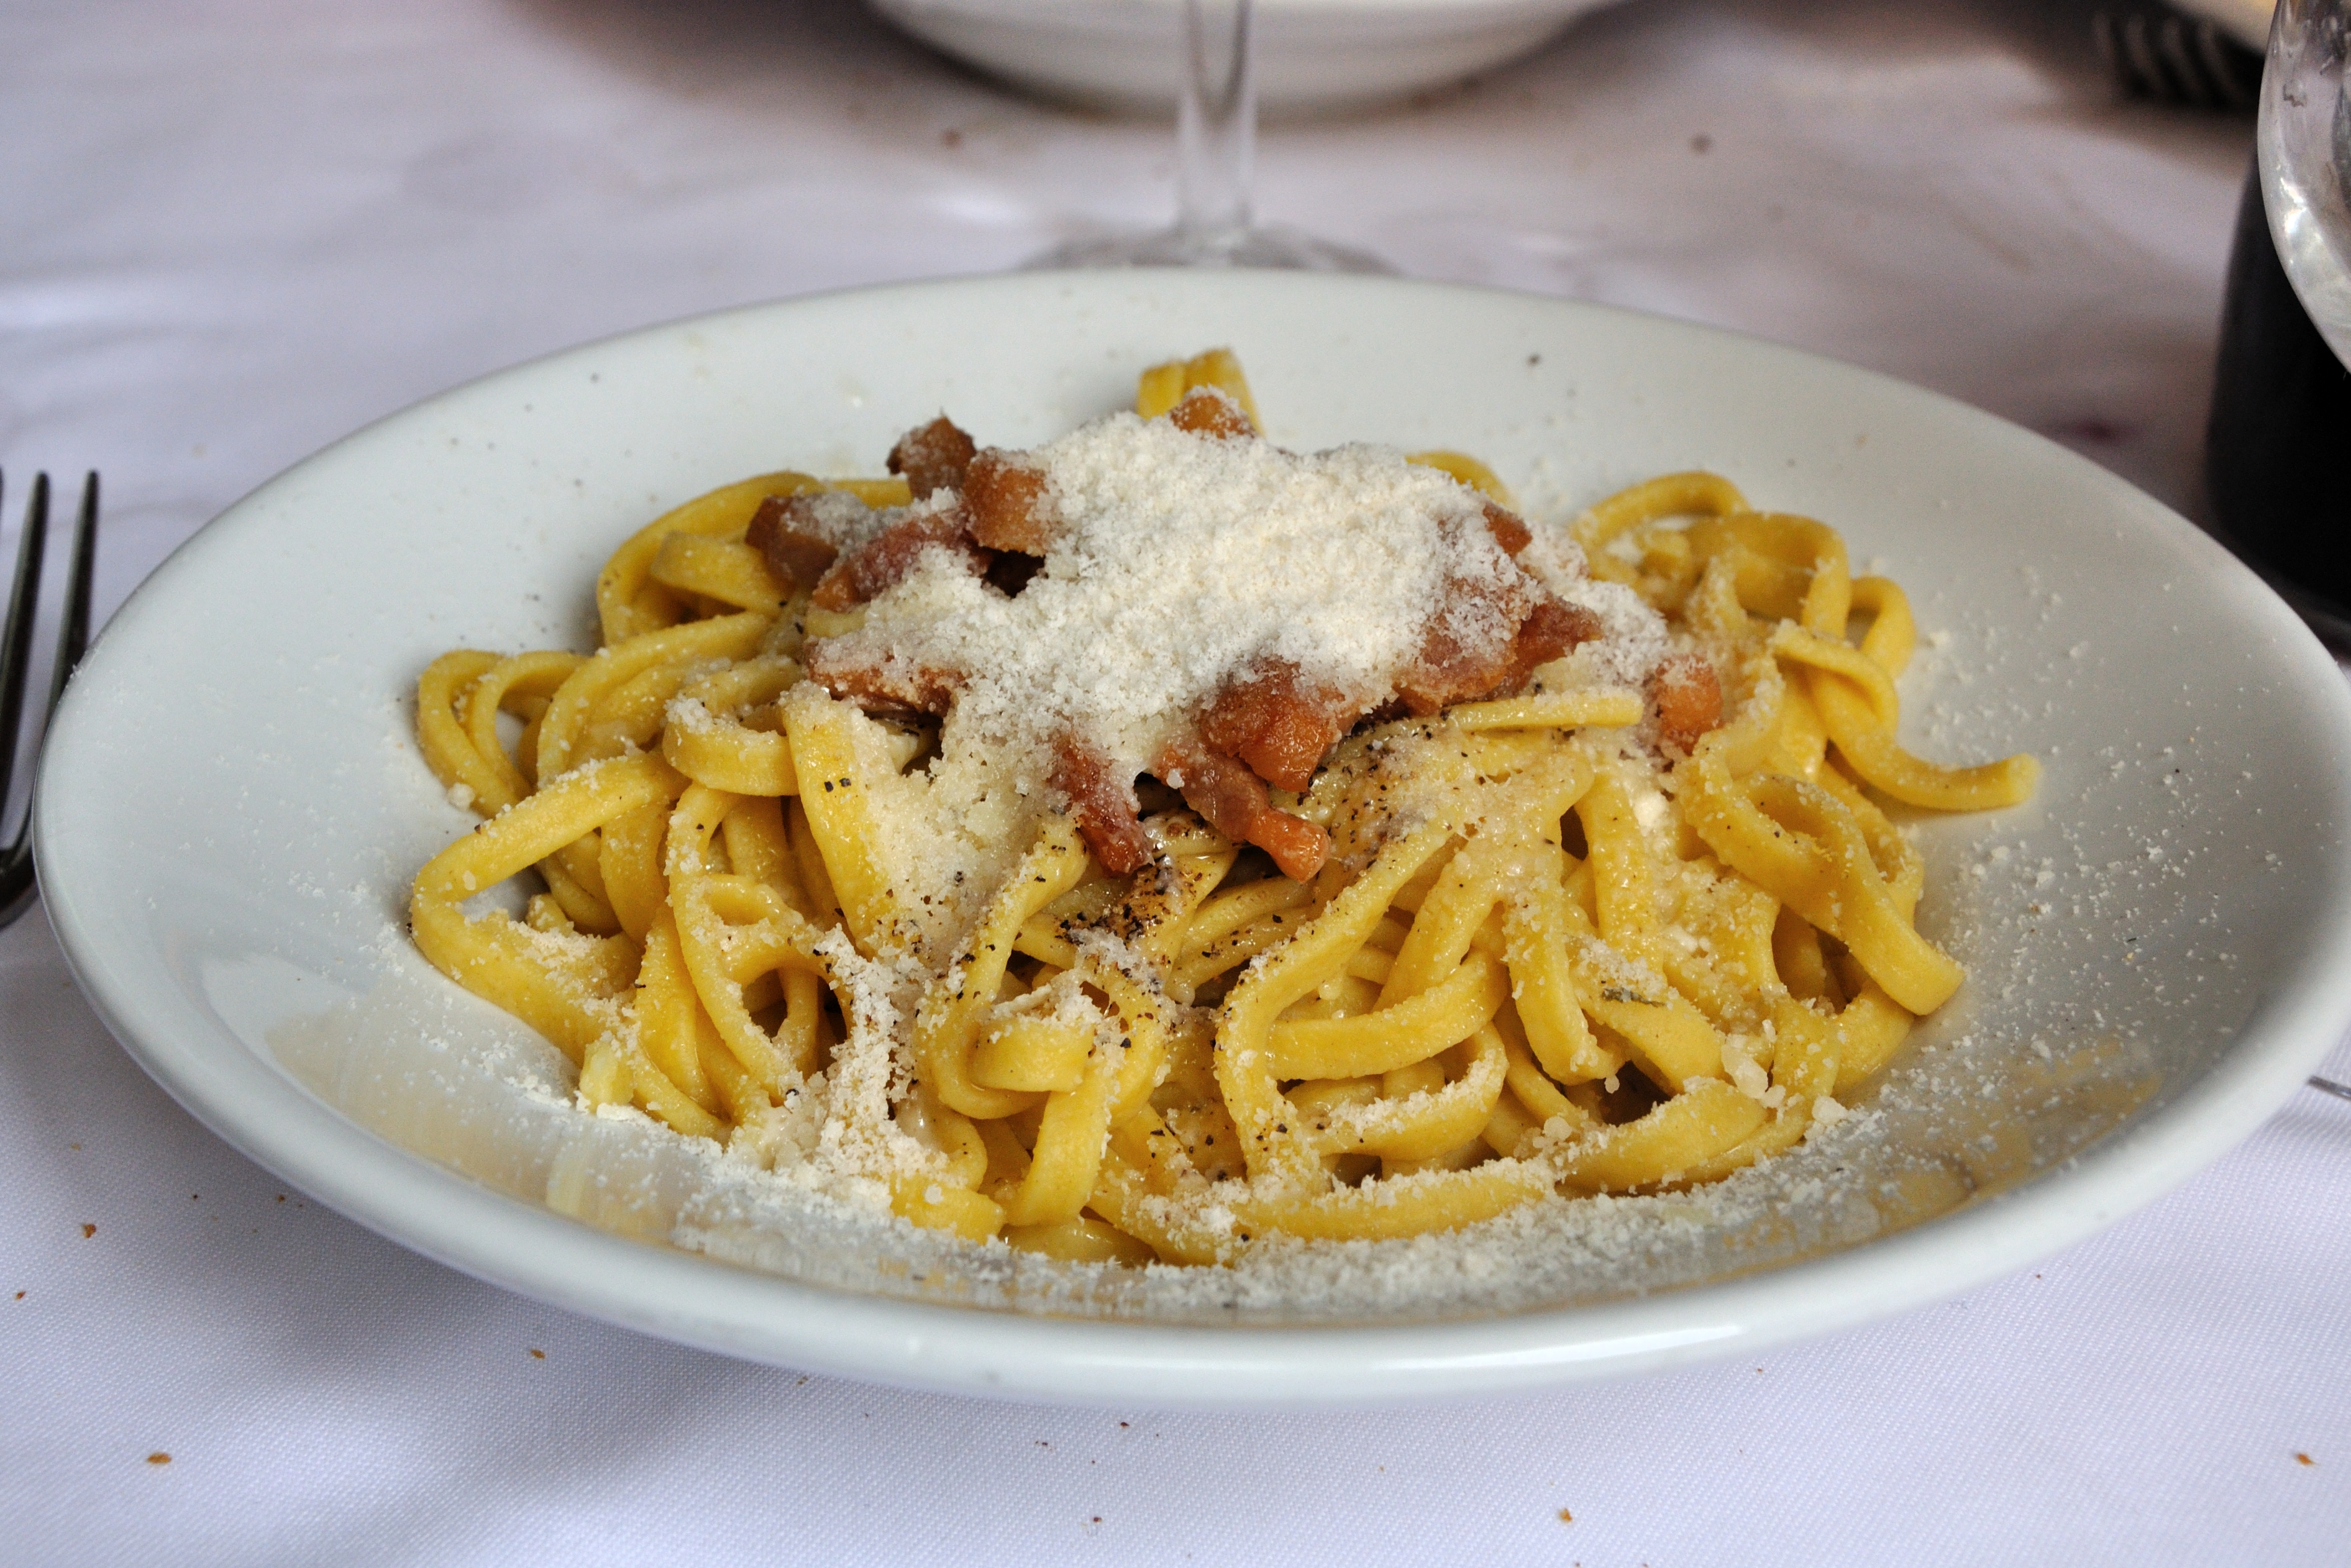 One of the most classic Roman pasta dishes